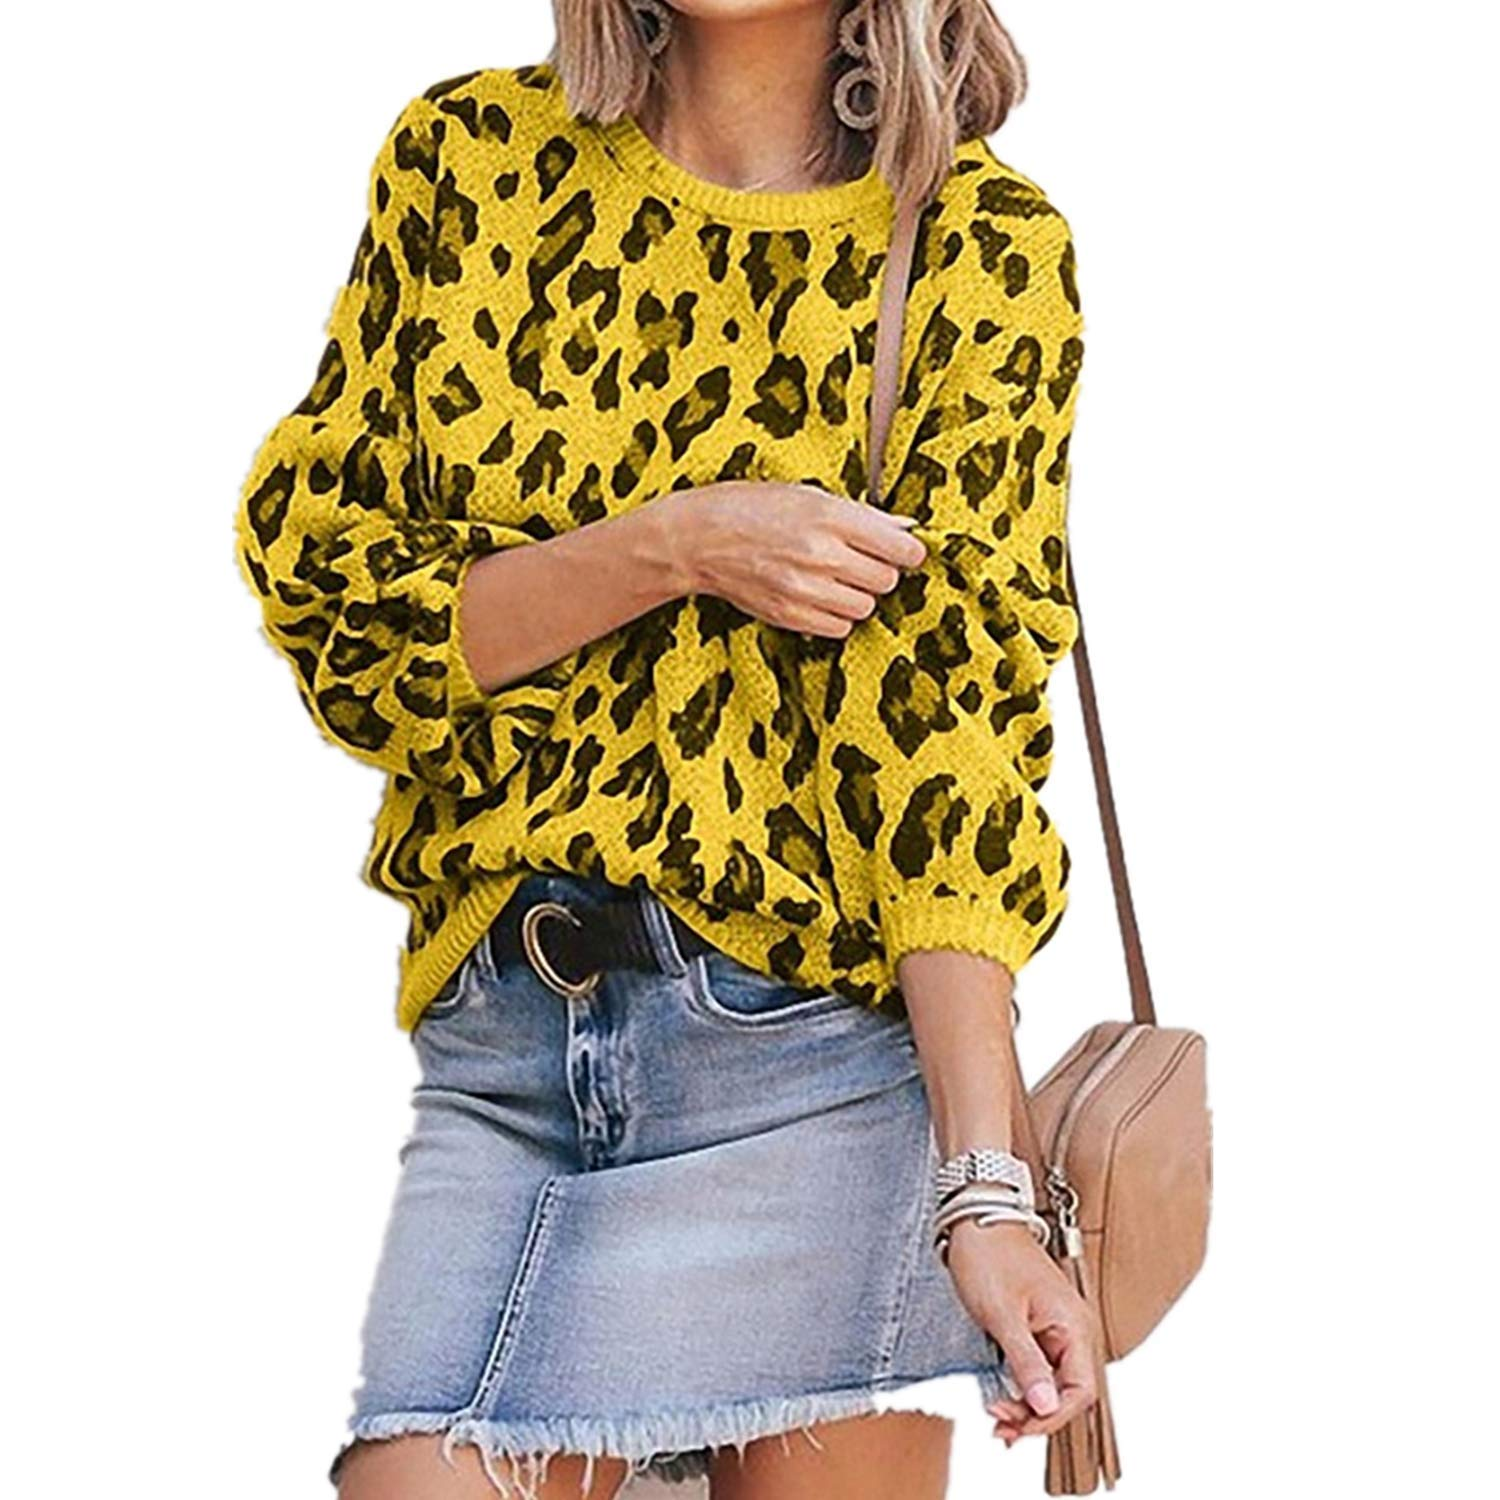 Womens Casual Leopard Printed Sweaters - Long Sleeve Sweatshirts Jumper Pullover Tops Knits Loose Blouse Yellow by HiSunlyan